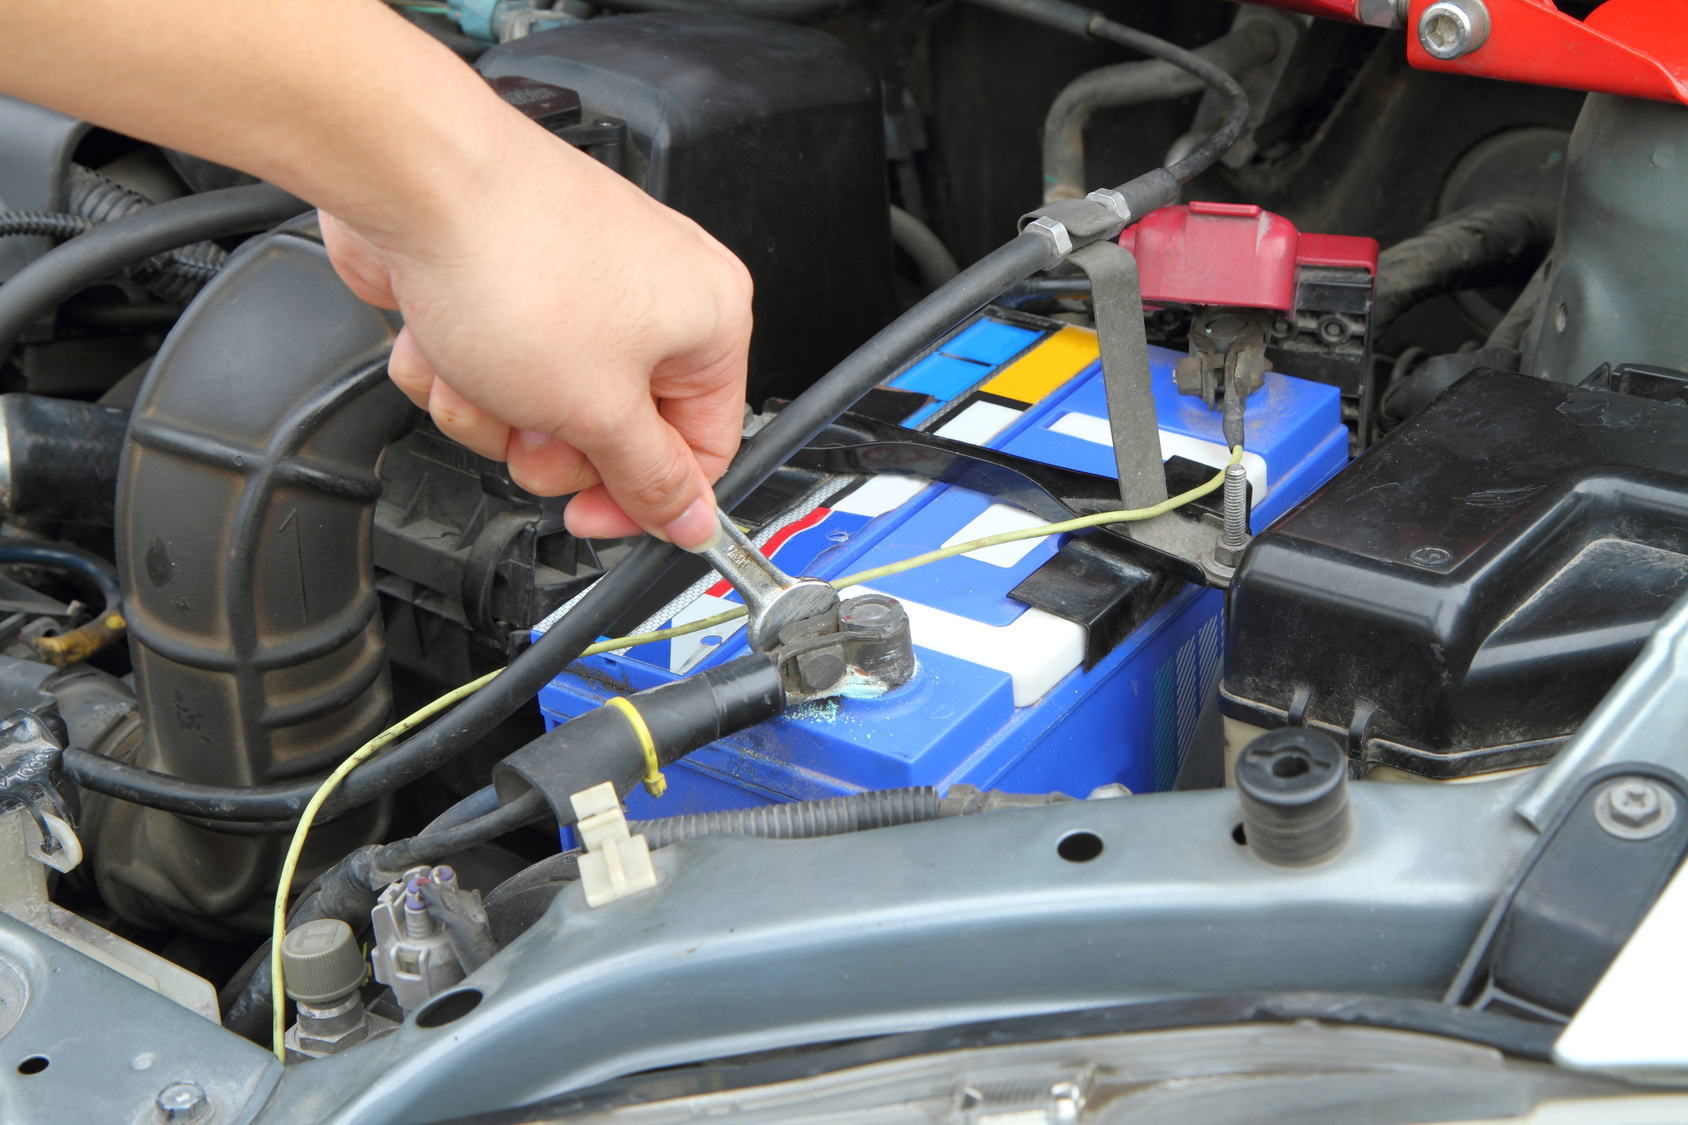 increase car battery life Miracle Body and Paint San Antonio Texas